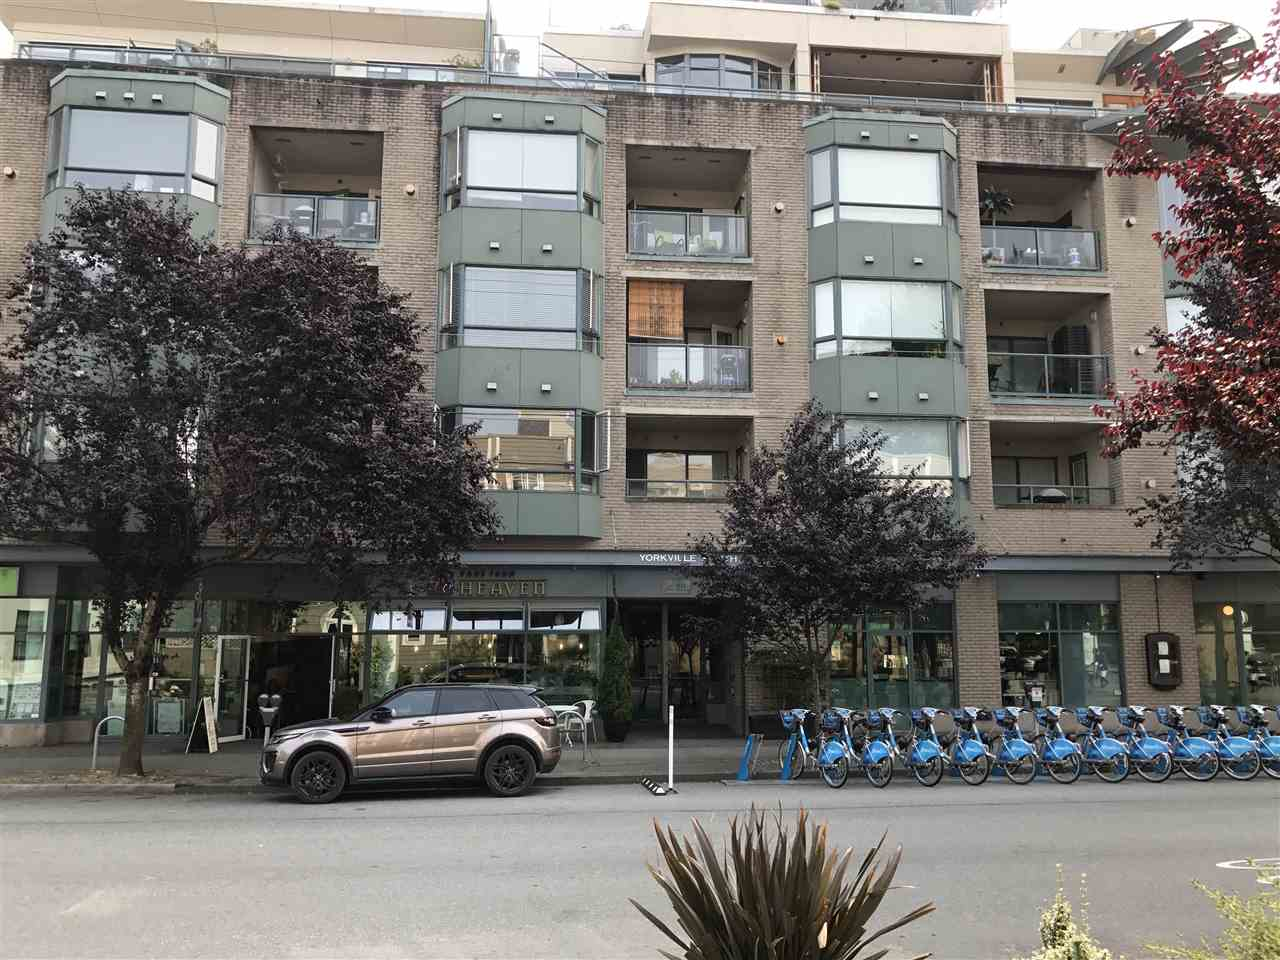 Condo Apartment at 501 1688 CYPRESS STREET, Unit 501, Vancouver West, British Columbia. Image 1